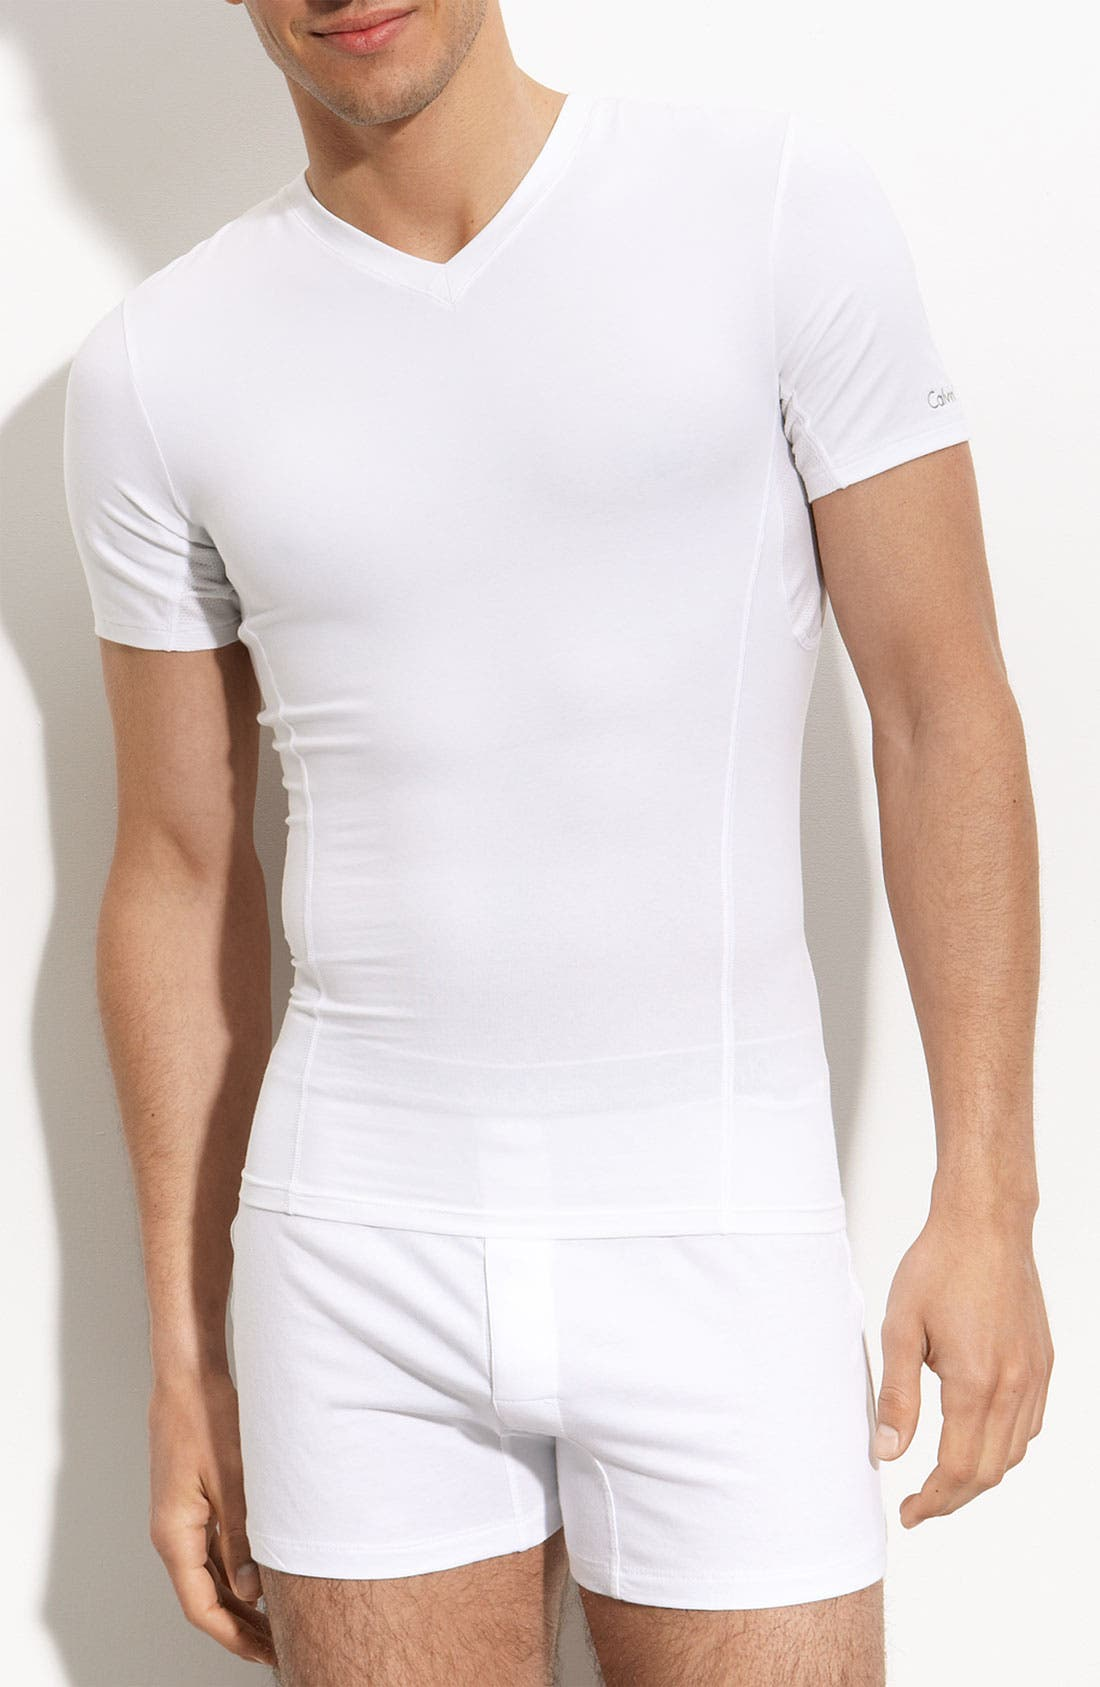 Alternate Image 1 Selected - Core Sculpt by Calvin Klein 'U8603' V-Neck Compression T-Shirt